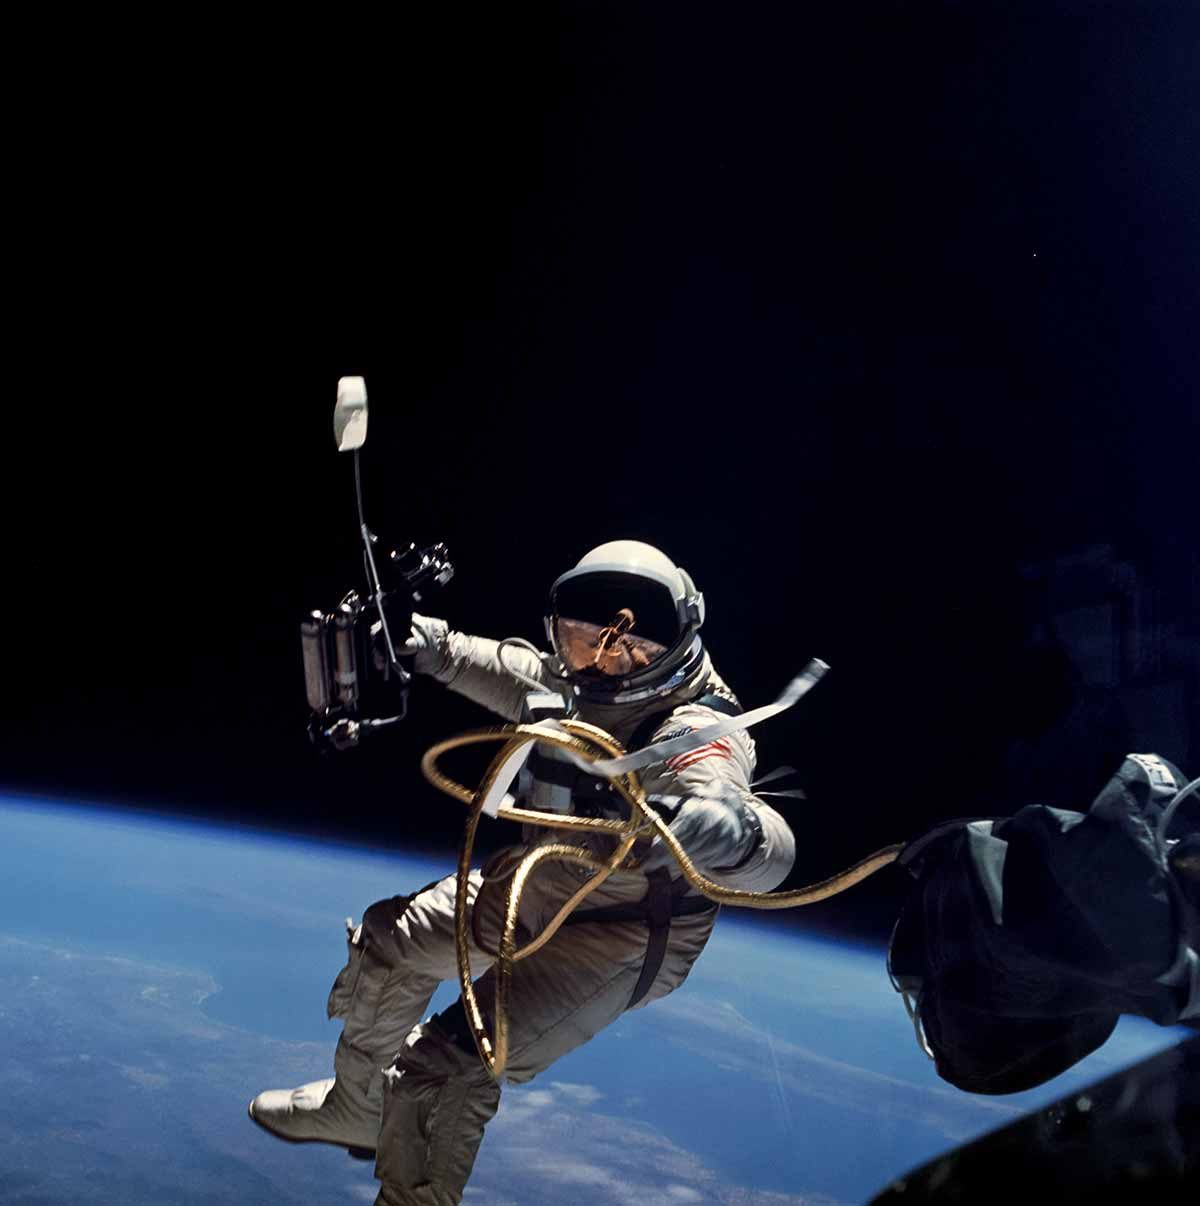 Ed White performing the first American spacewalk. Image in public domain.